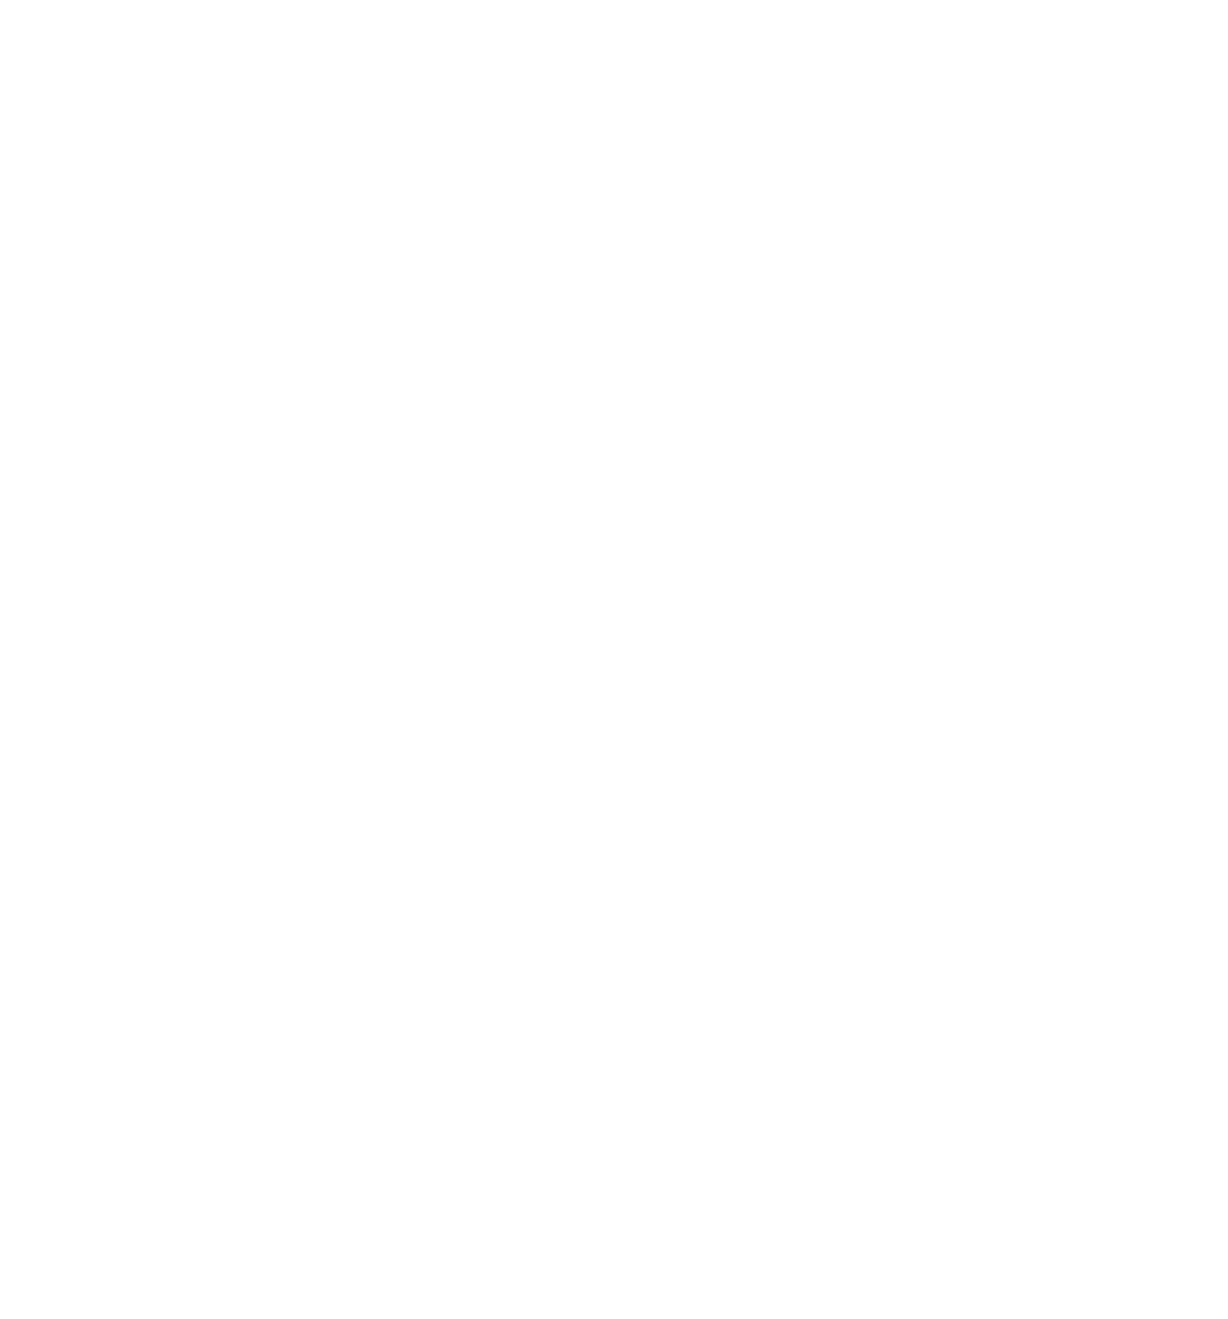 Logan Winkles & Hartley Station